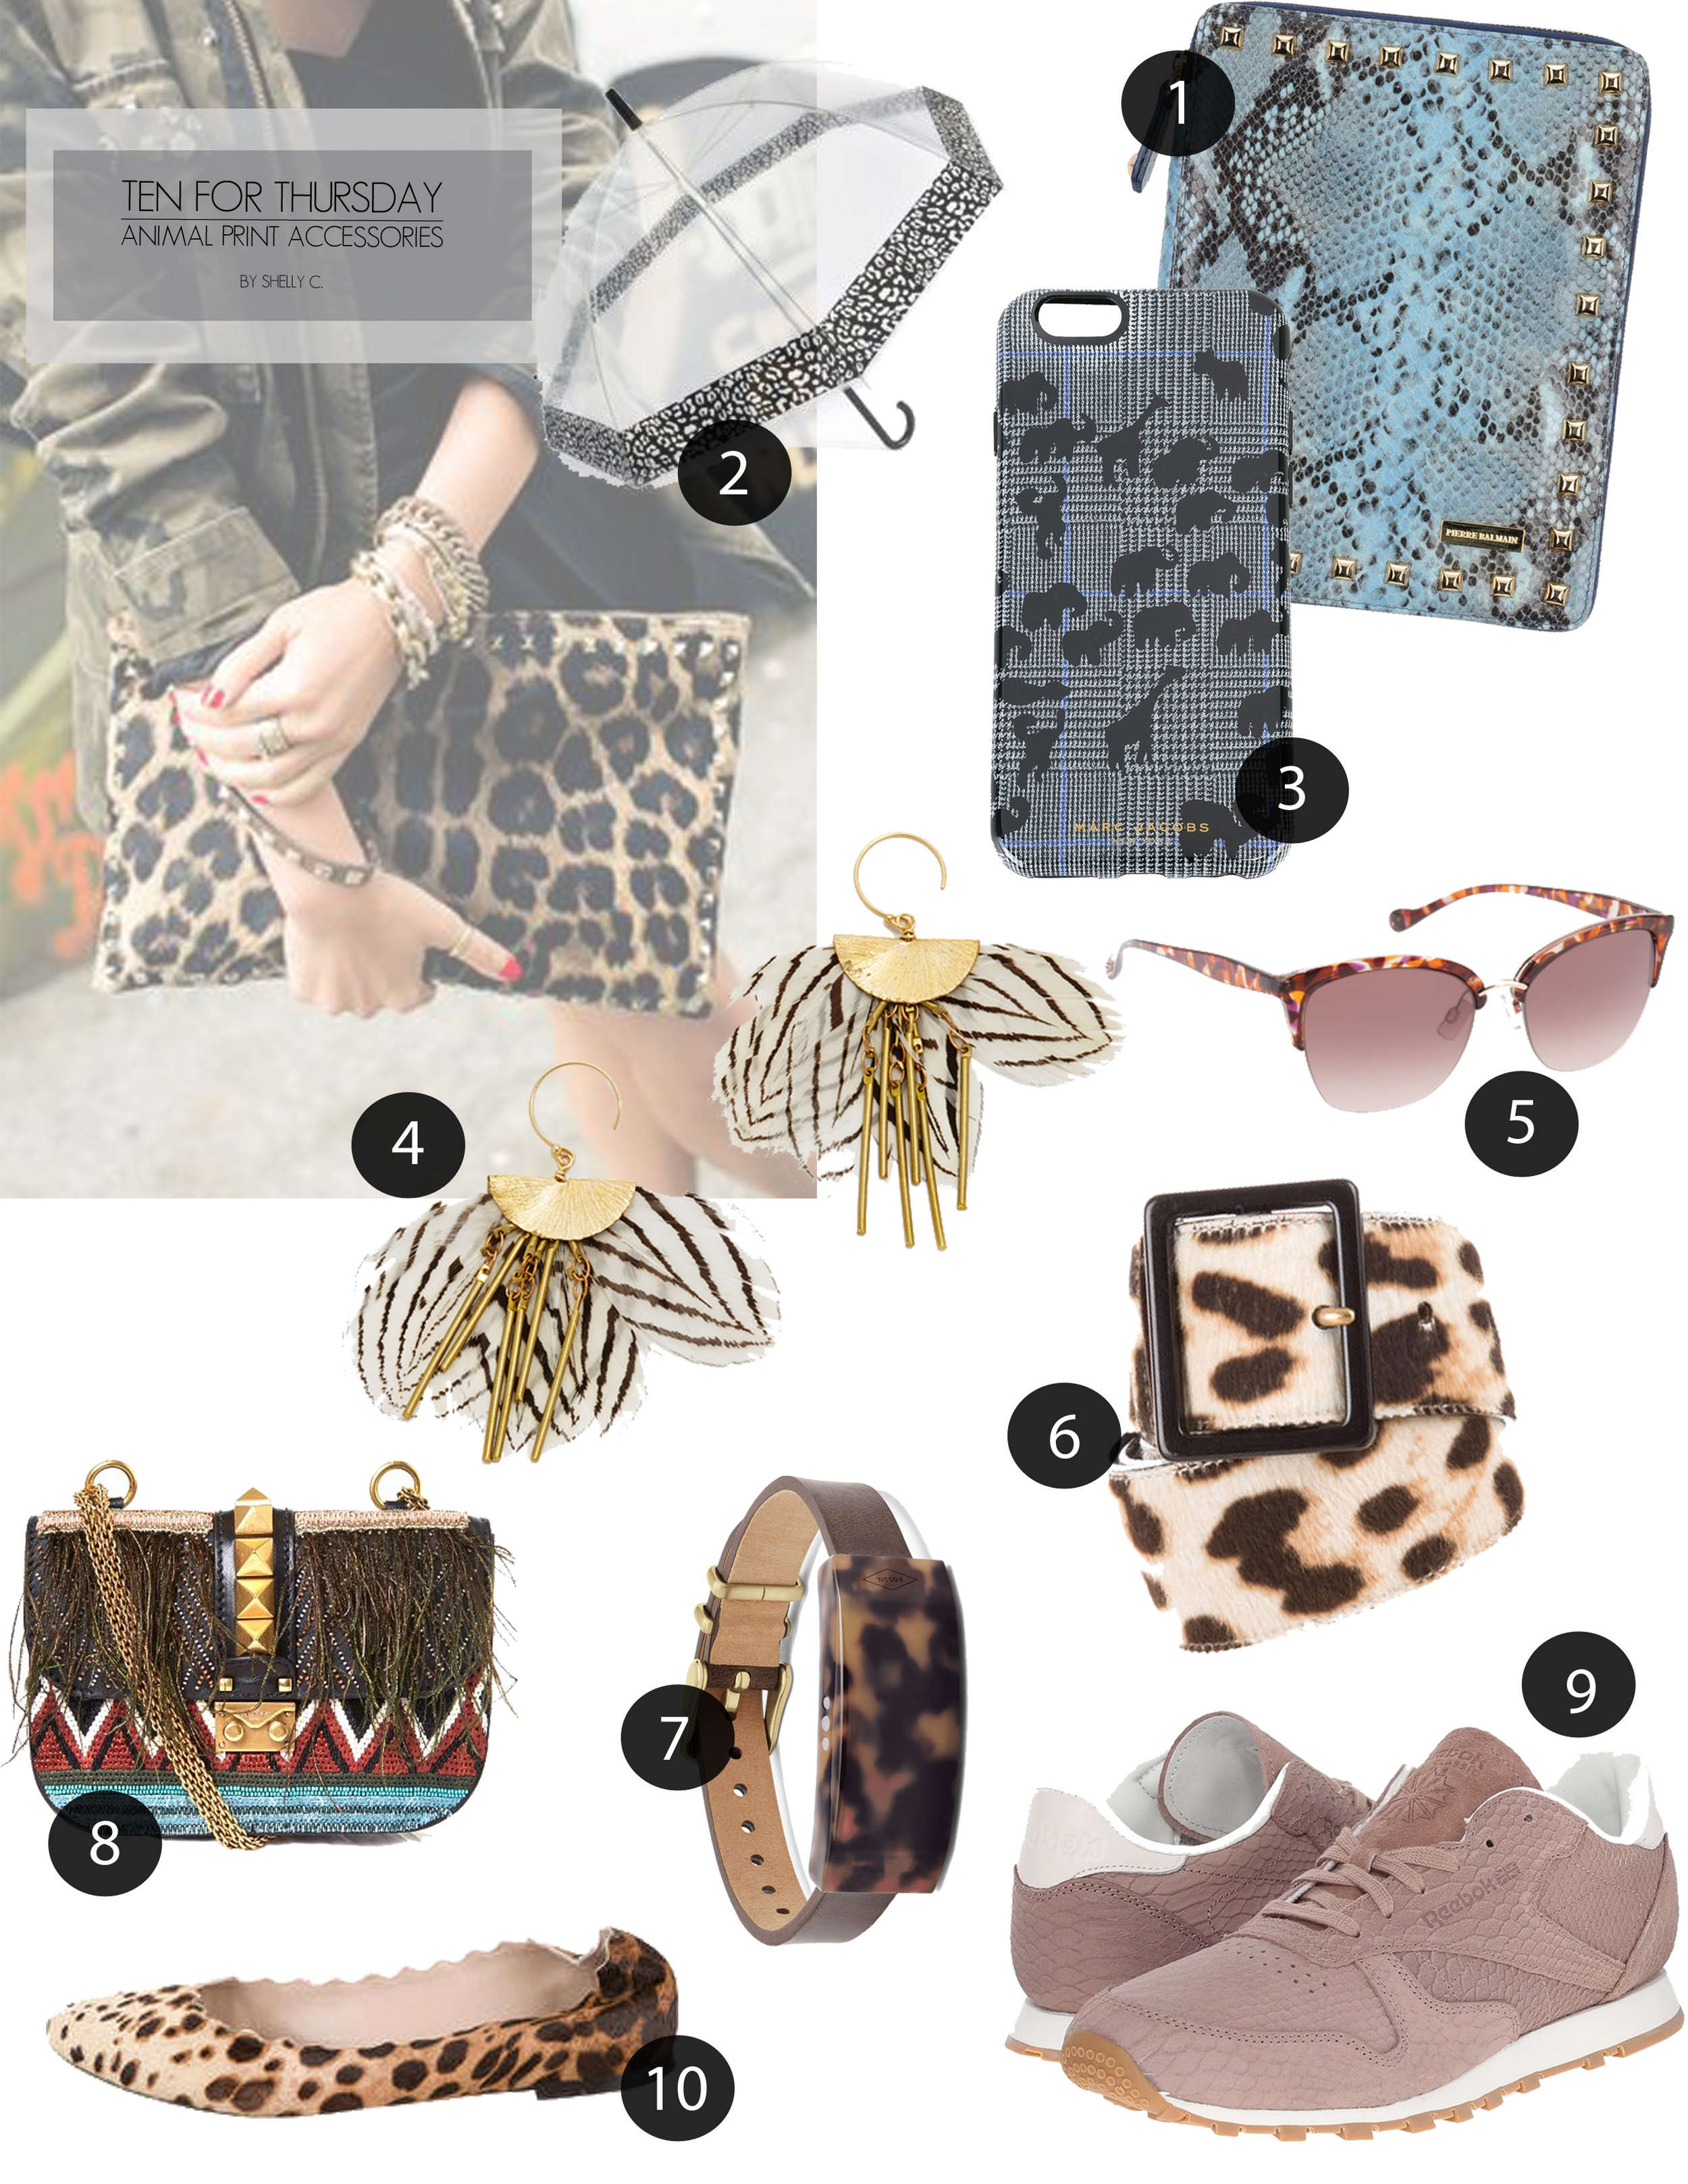 (i mage source )       Where to buy:: 1.Pierre Balmain Hi-Tech Accessories,  Here  |2.  Marc Jacobs 'Animal Flock' Iphone 6s Case,  Here  |3. Animal Print Border Walker Umbrella With Stormwear™,  Here , |4. Serefina Zebra Feather Earrings,  Here  |5. Women's Jessica Simpson J5355 Cateye Animal Print Sunglasses,  Here  |6. Yves Saint Laurent Ponyhair Leopard Belt,  Here  |7. Q Dreamer Dark Brown Leather Activity Tracker,  Here  |8. Valentino Lock Medium Embellished Leather Shoulder Bag,  Here  |9. Reebok Lifestyle Classic Leather Clean Exotics,  Here  |10. Chloé Animal Print Ponyhair Flat,  Here